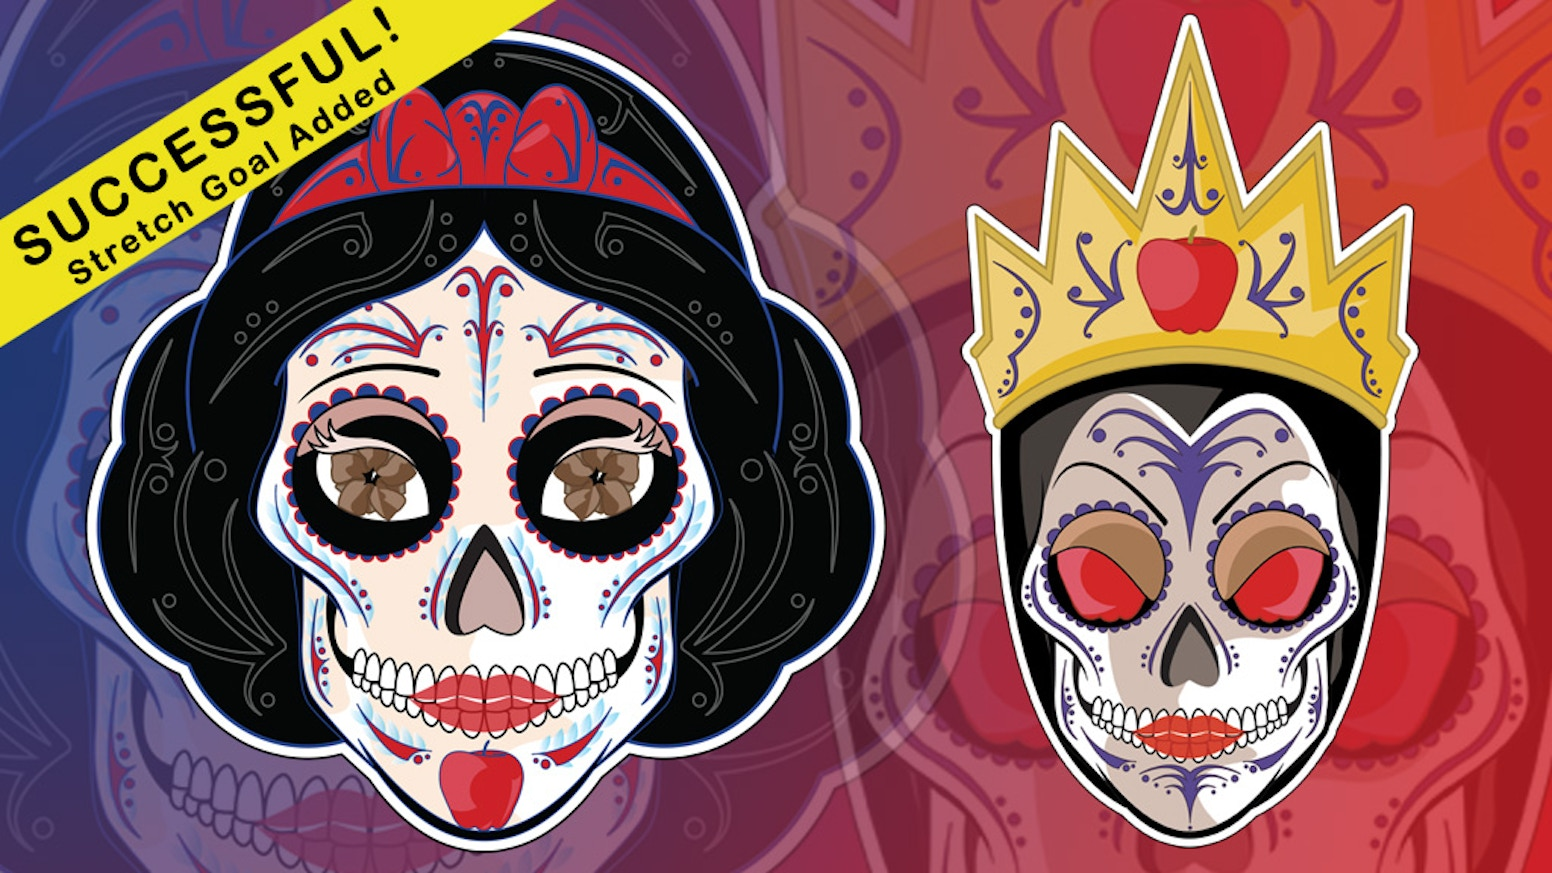 Snow white evil queen sugar skull stickers by mickel yantz mirror mirror on the wall who has the sickest sugar skull of them all get you snow white and evil queen sticker here amipublicfo Choice Image